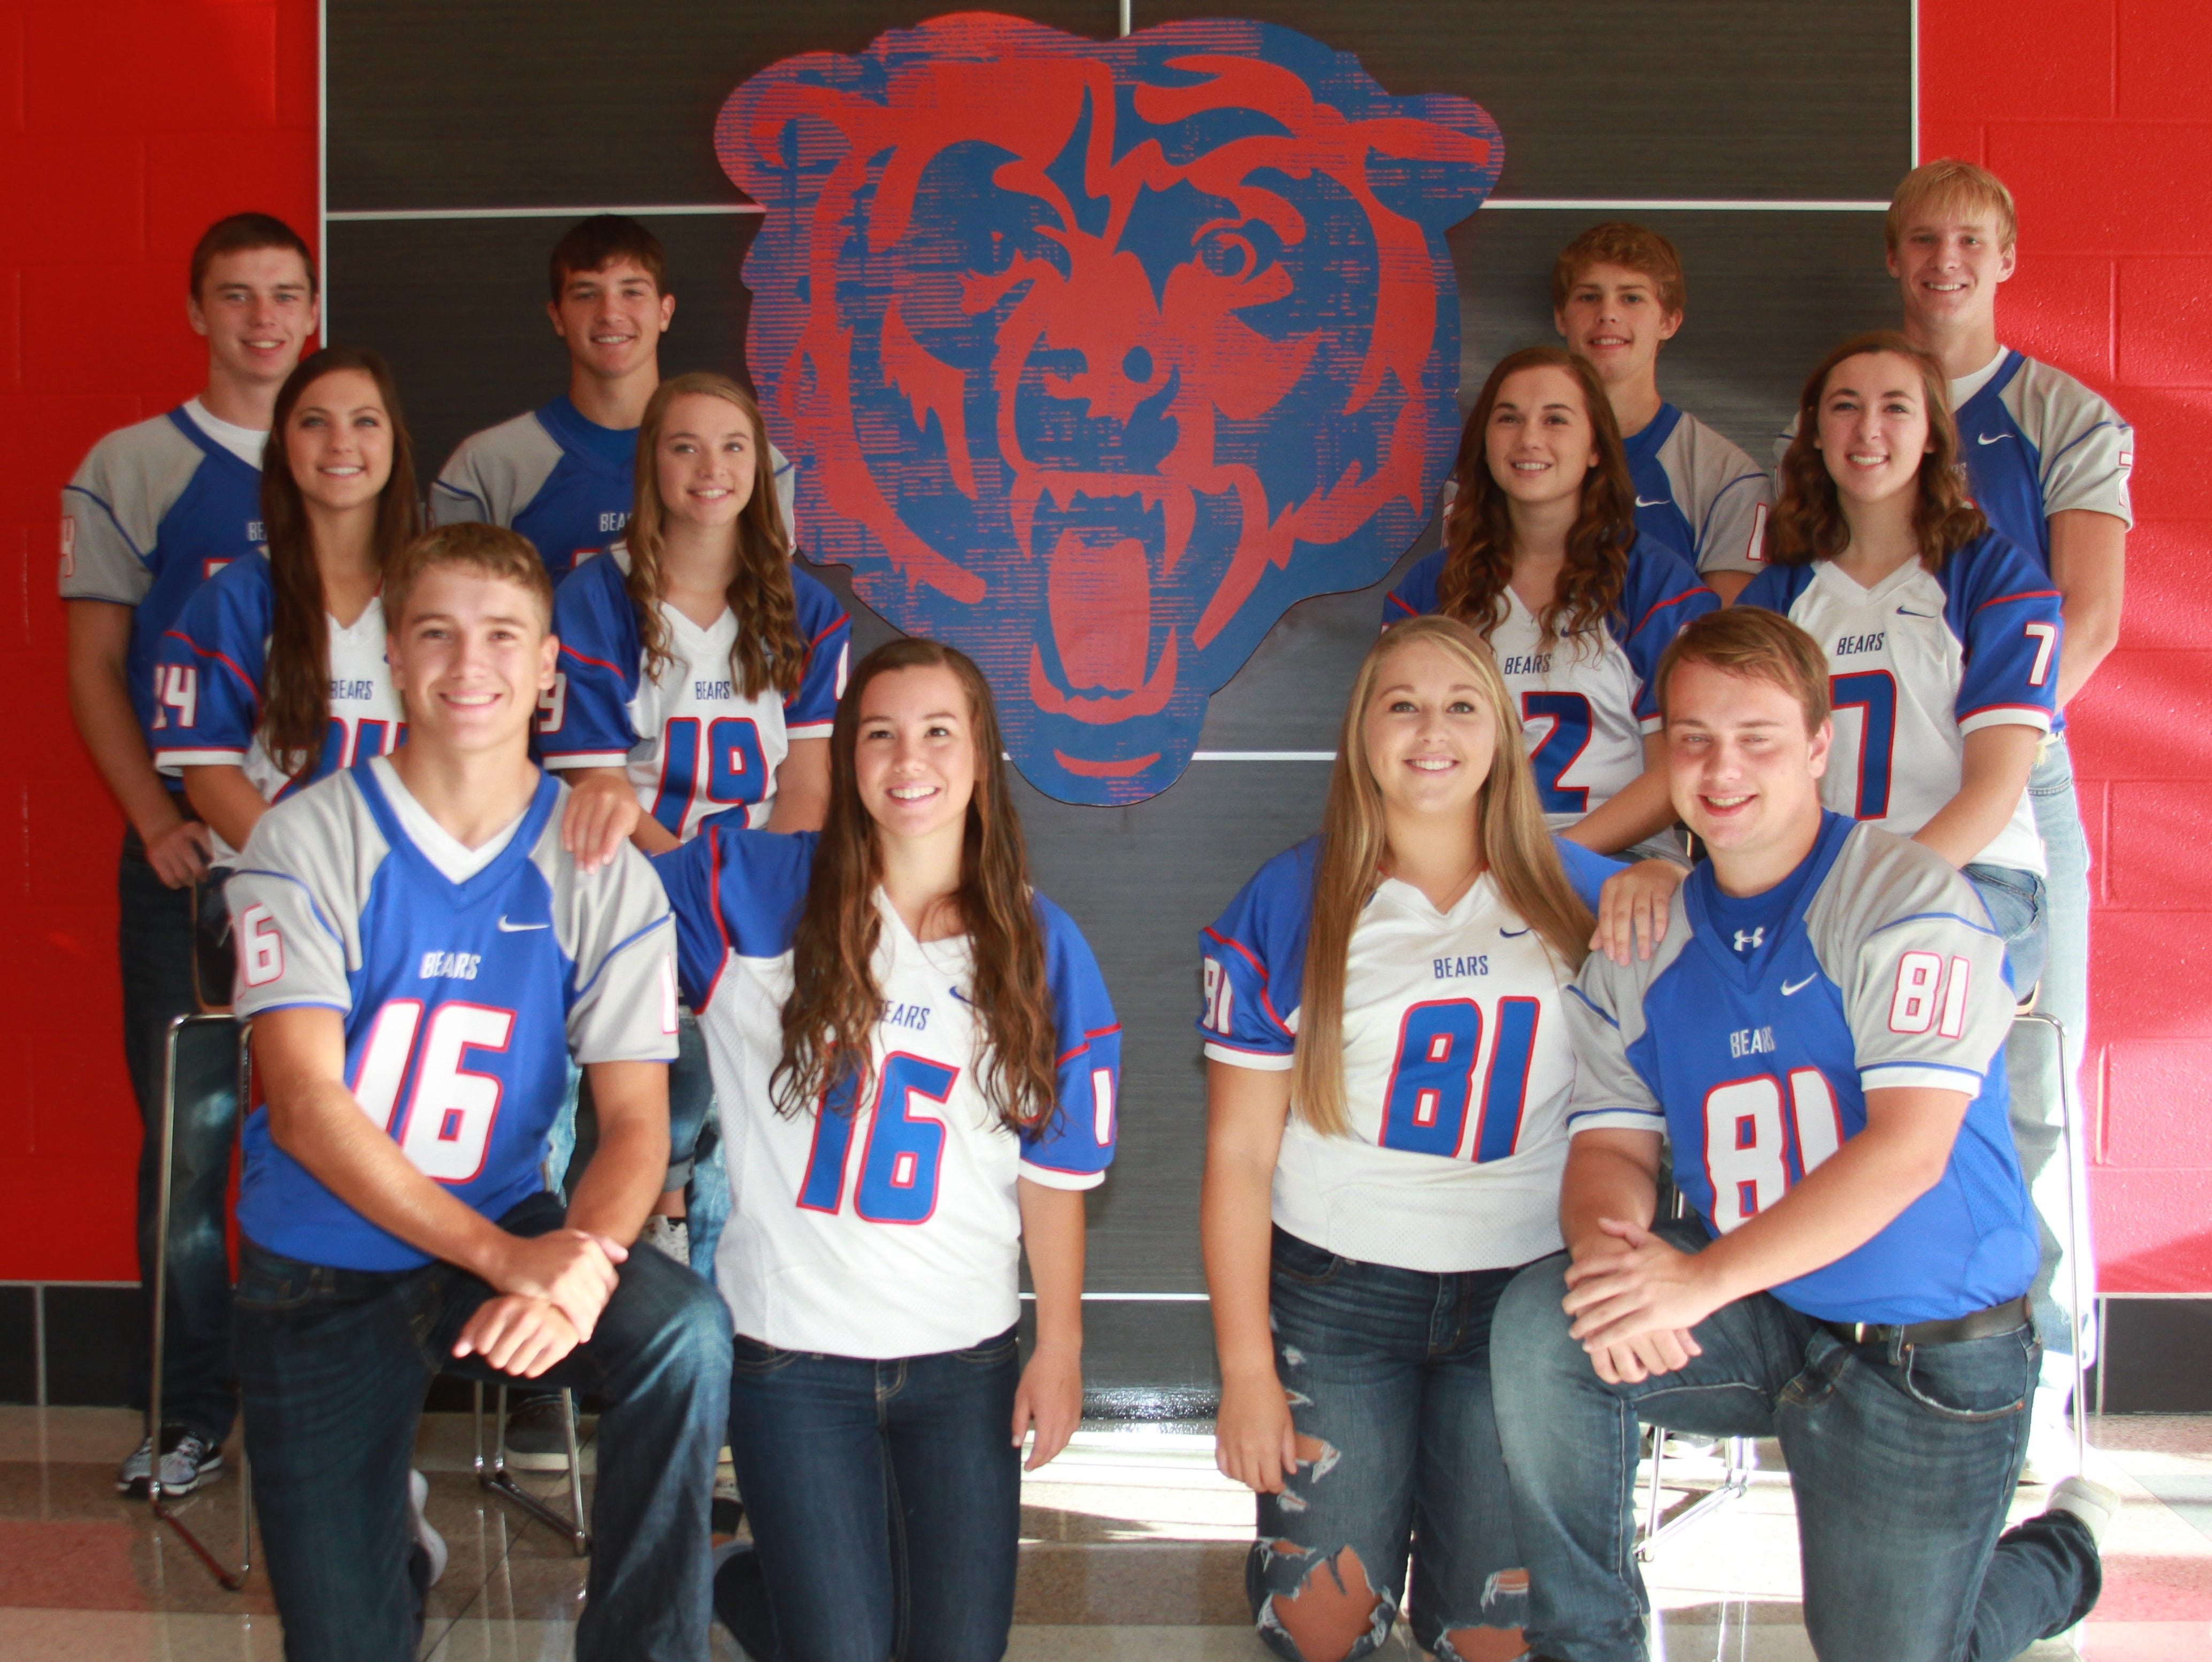 2016 BGM Homecoming Court is, front row, from left: Zane Winter, Mollie Tibbetts Alexis Lynd and Brady VanErsvelde. Second row: Hope Beck, Baylee VanErsvelde, Aimee Hochstetler and Jesse Wiegand. Third row: Eric Weiss, Dylan Schafbuch, Kalvon Steffen and Jayce Knight.